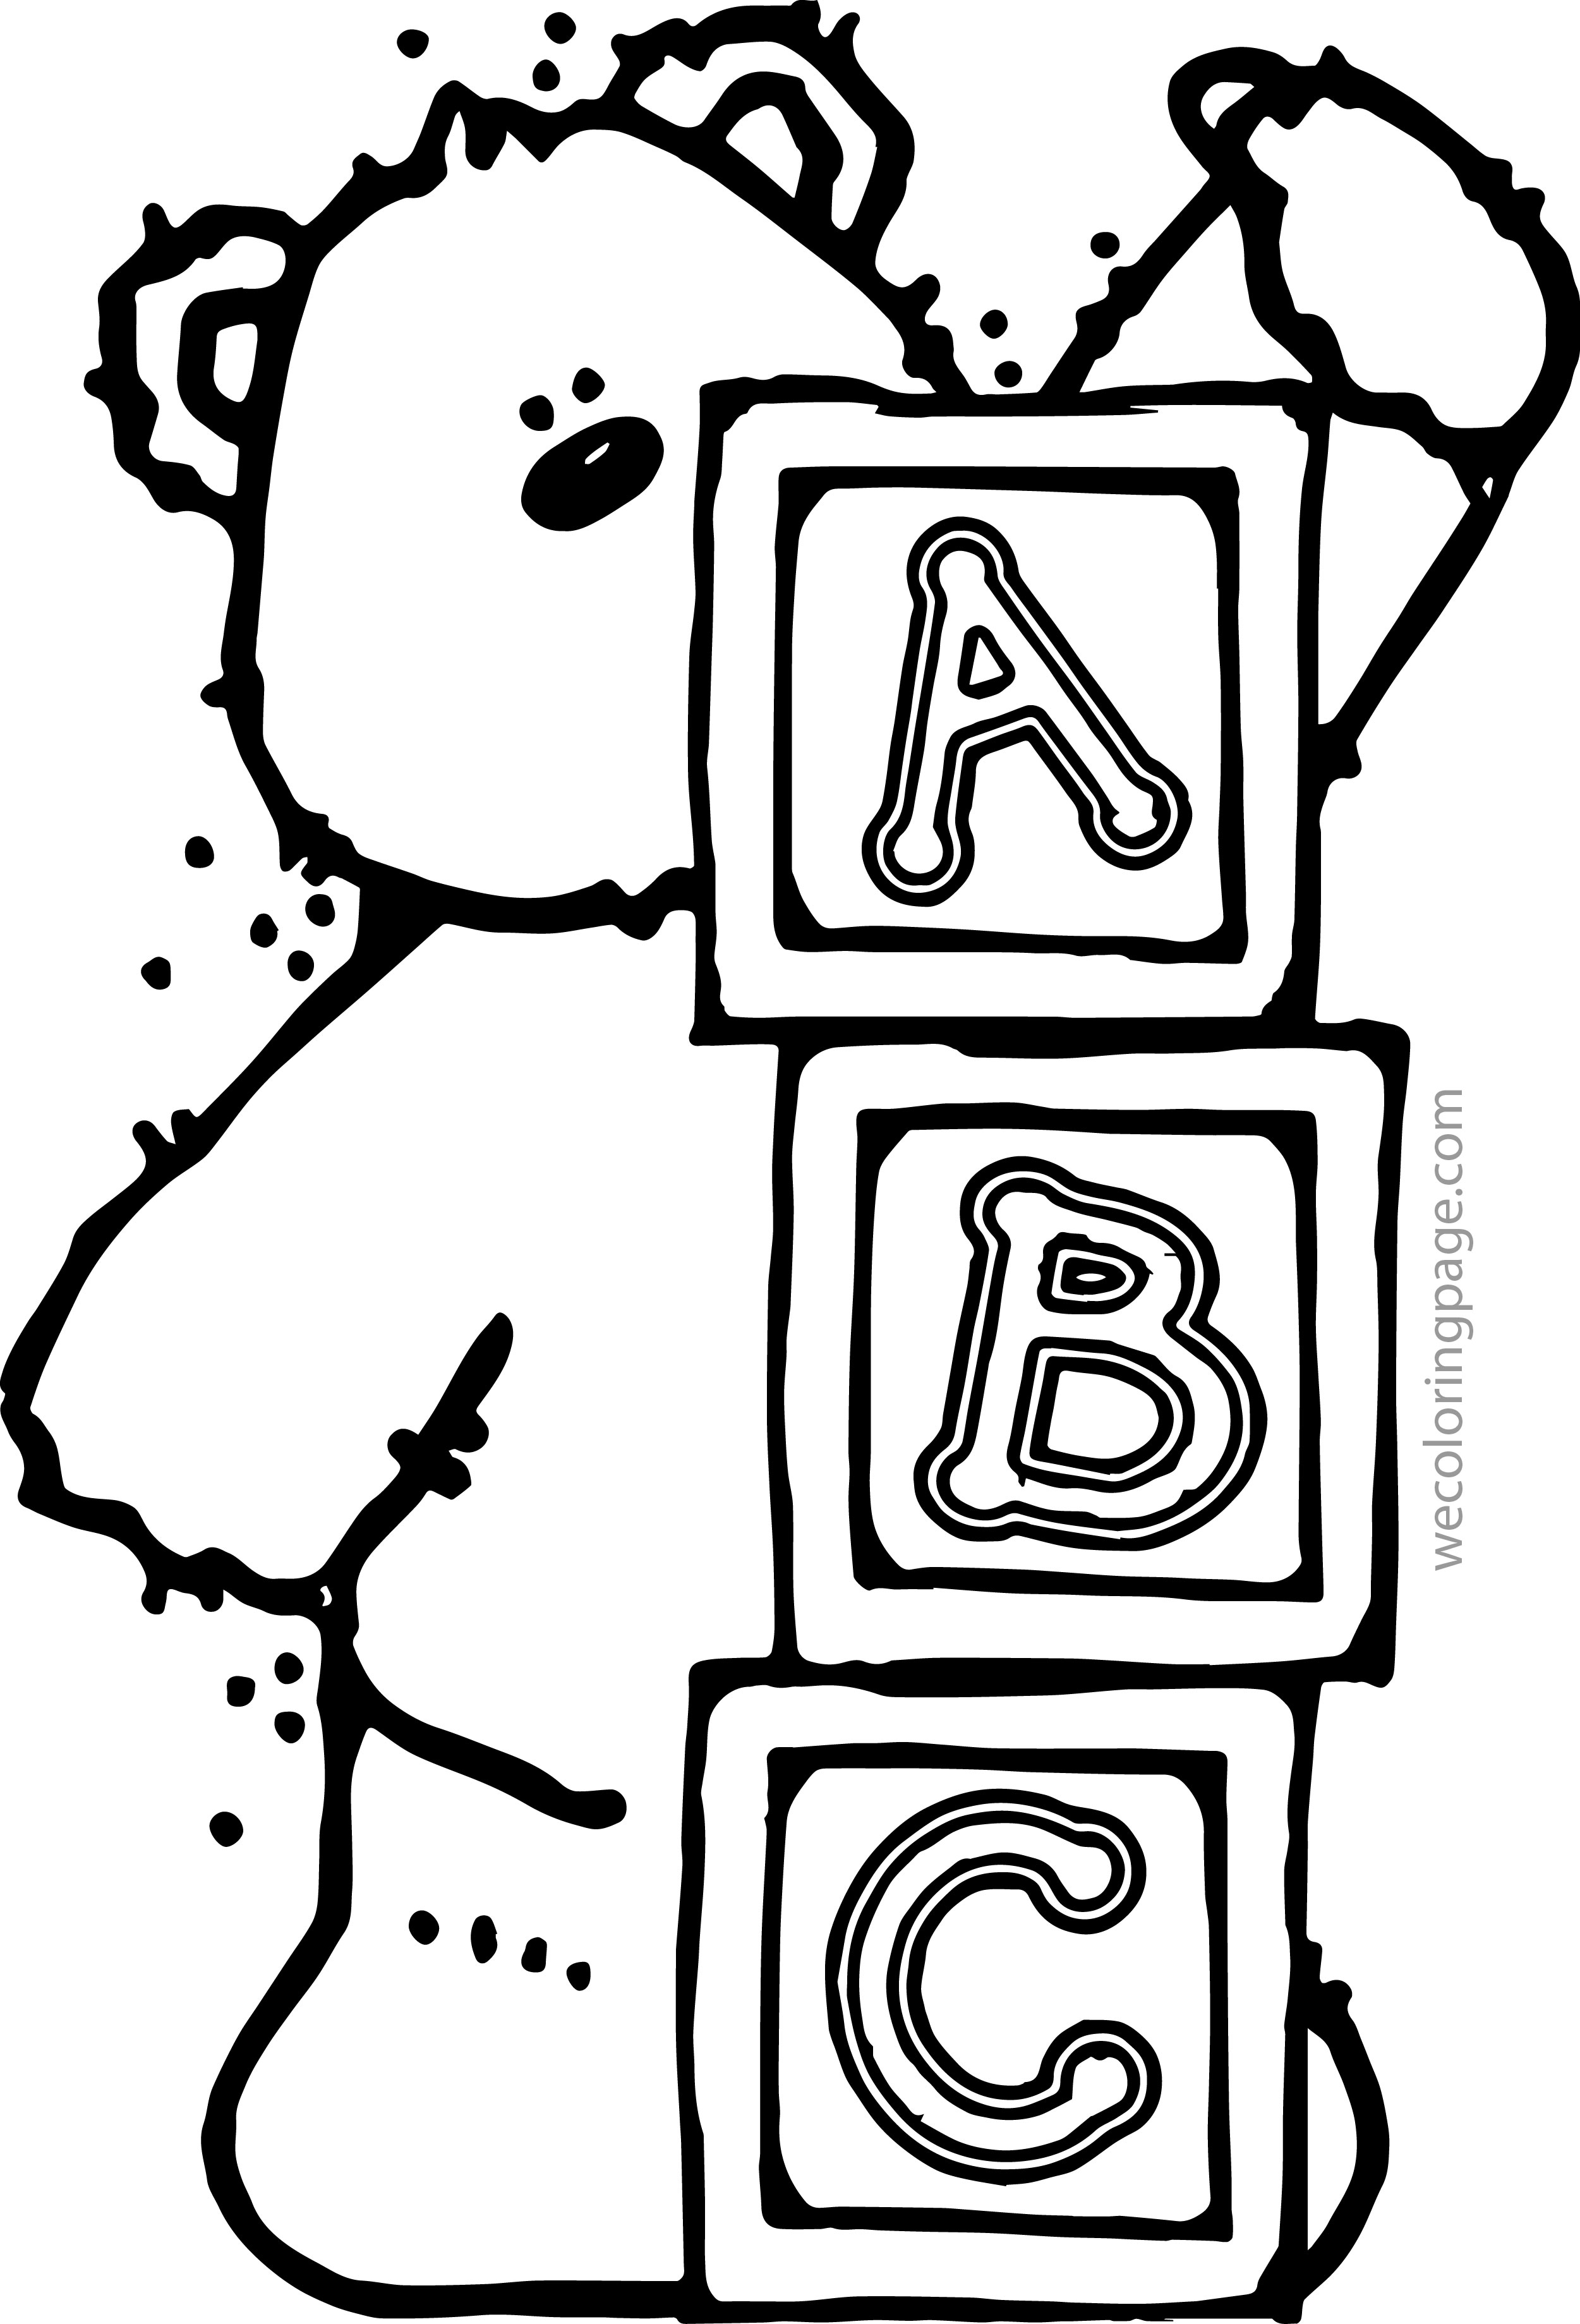 Abc Blocks Drawing Free download best Abc Blocks Drawing